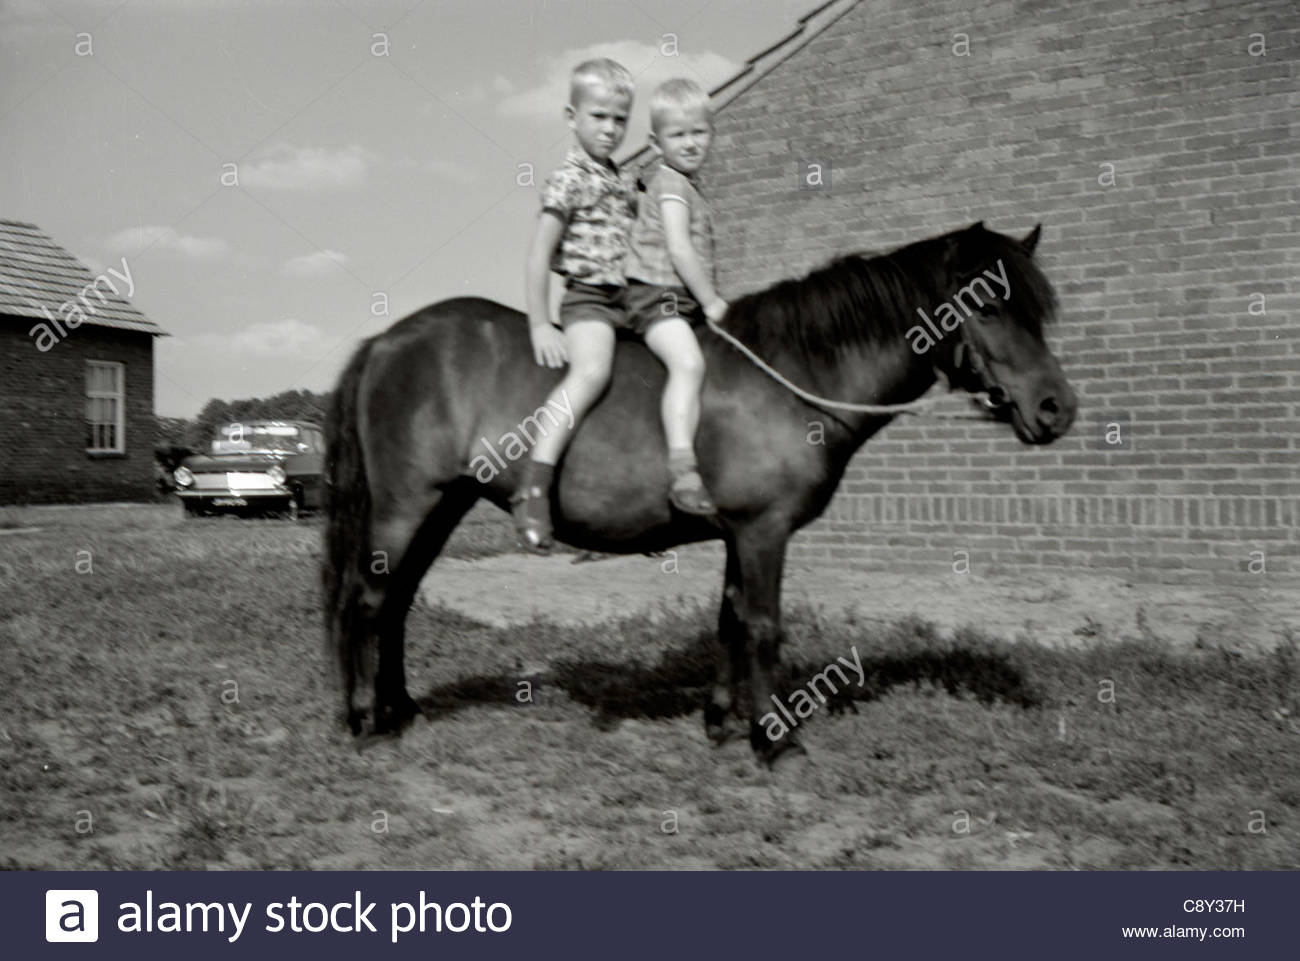 Two boys sitting on a pony 1960s Holland - Stock Image